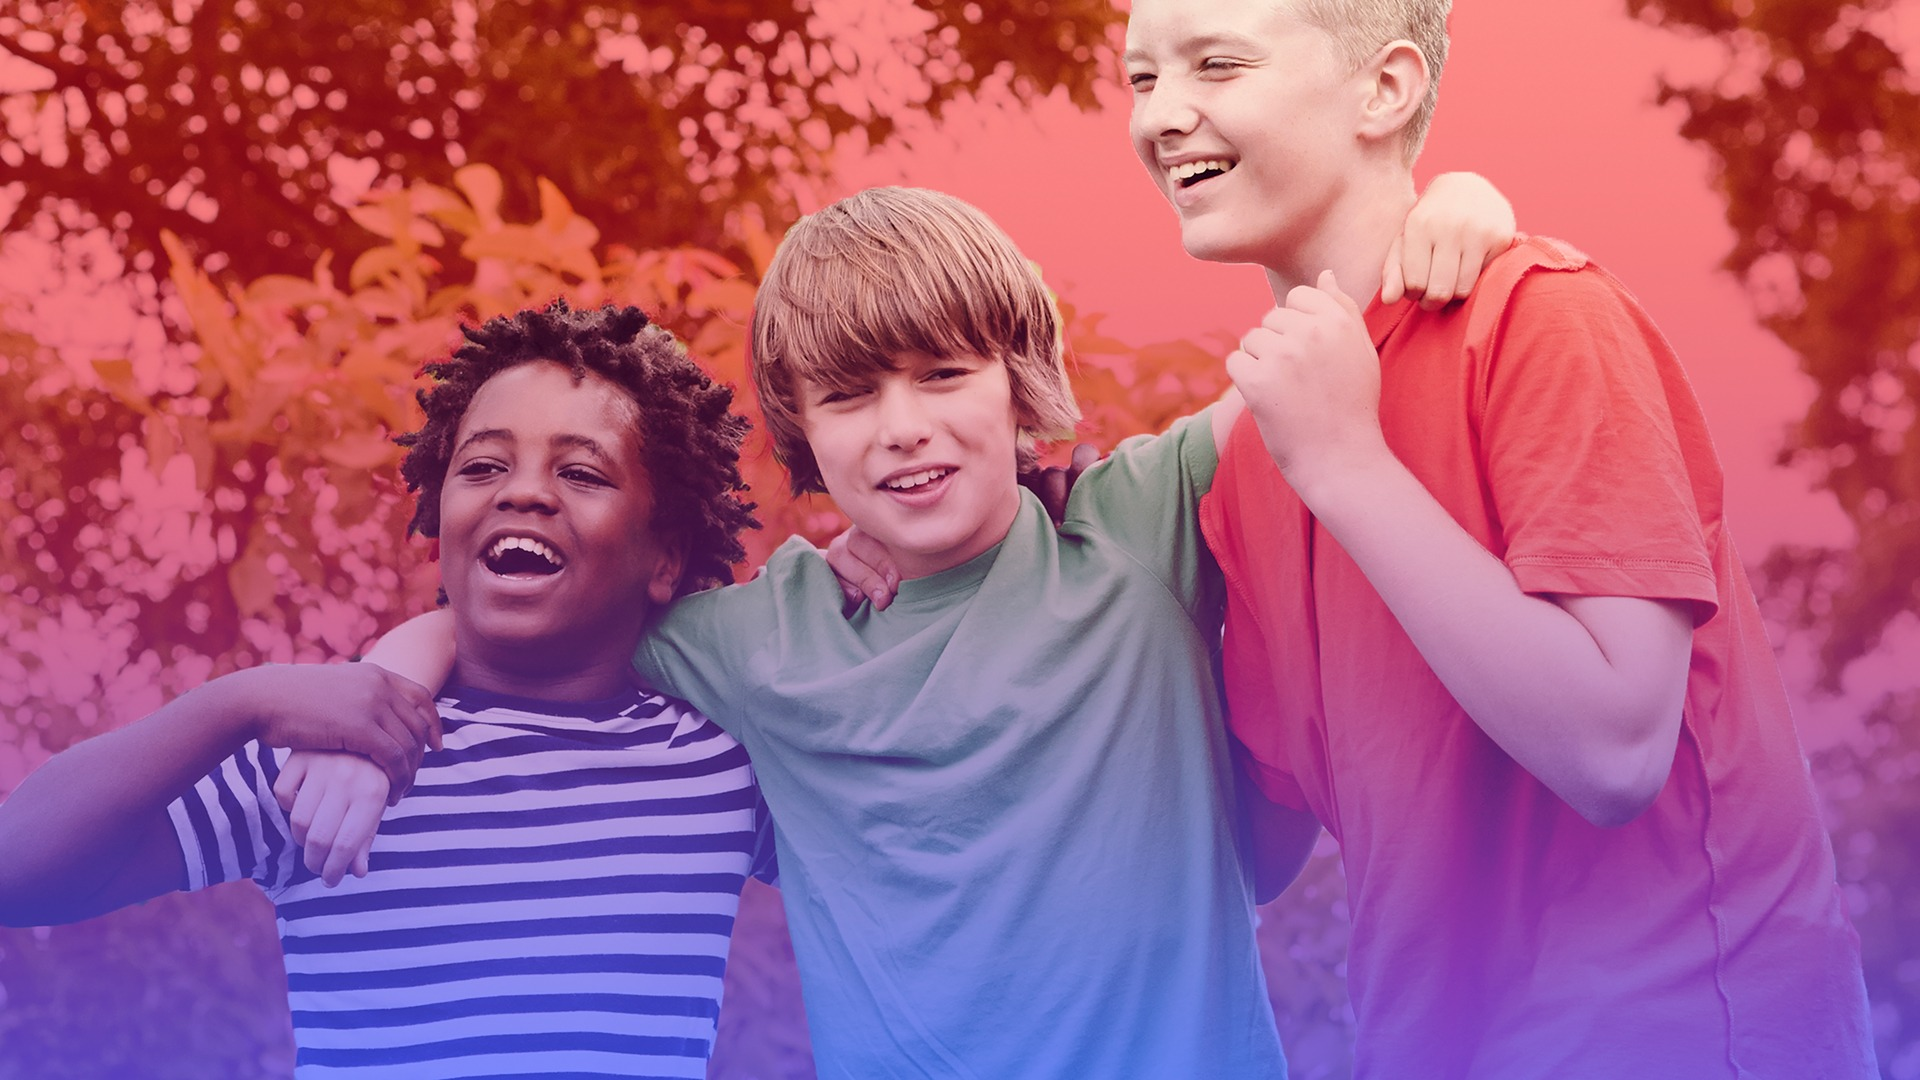 White Kids Need to Start Using Their Privilege for Good — Here's How to Teach Them